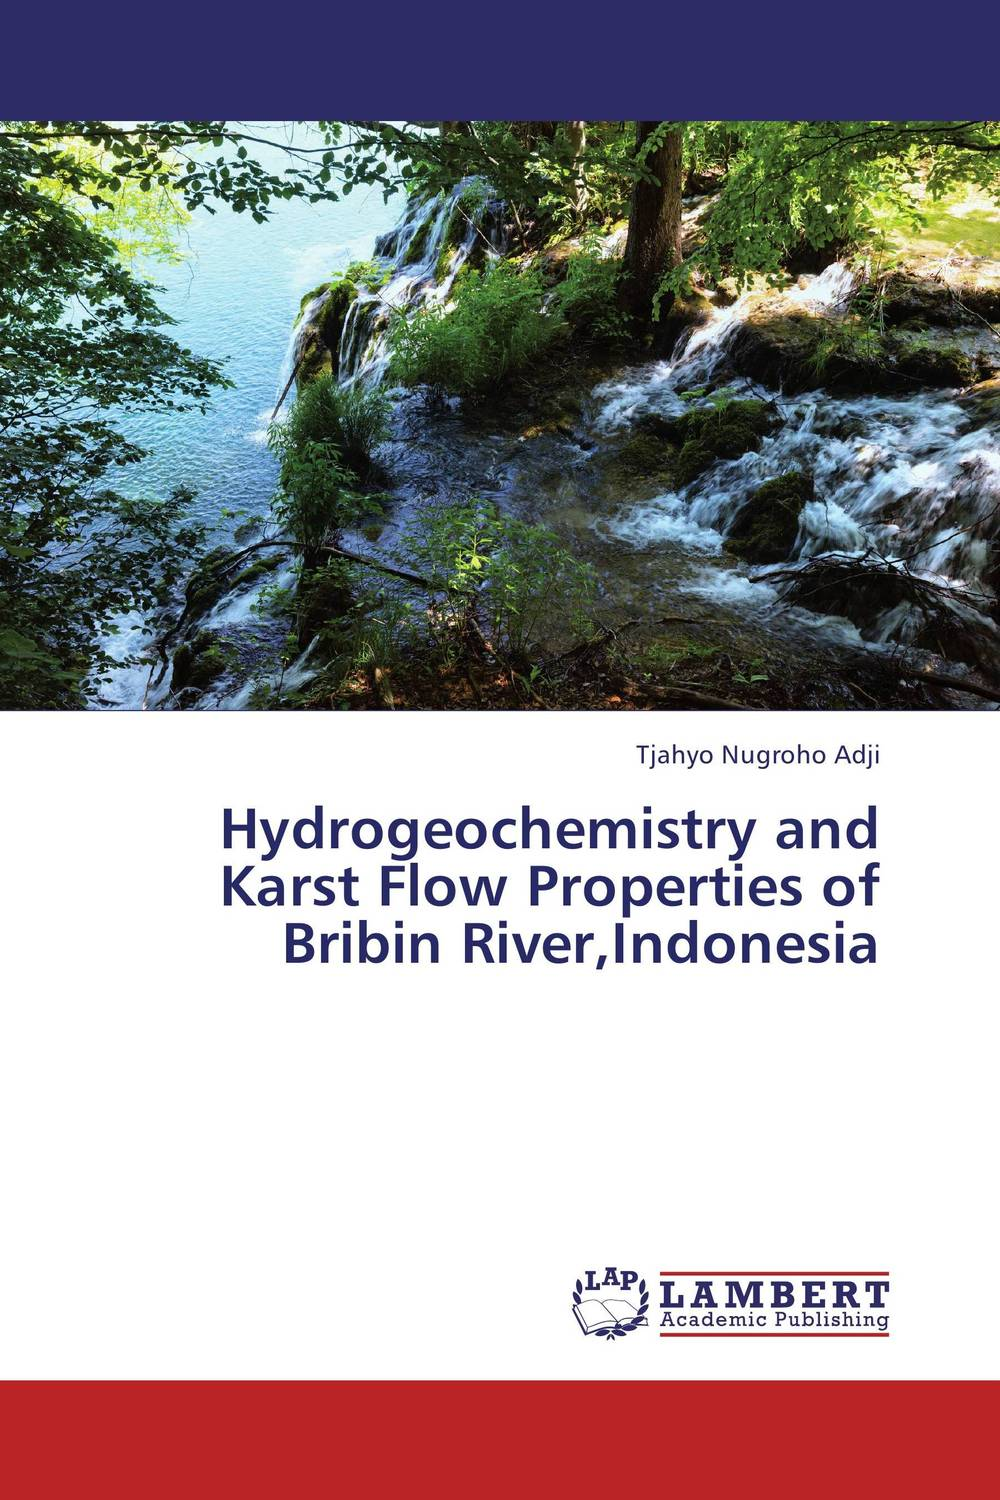 Hydrogeochemistry and Karst Flow Properties of Bribin River,Indonesia lepin 22001 imperial warships 16009 queen anne s revenge model building blocks for children pirates toys clone 10210 4195